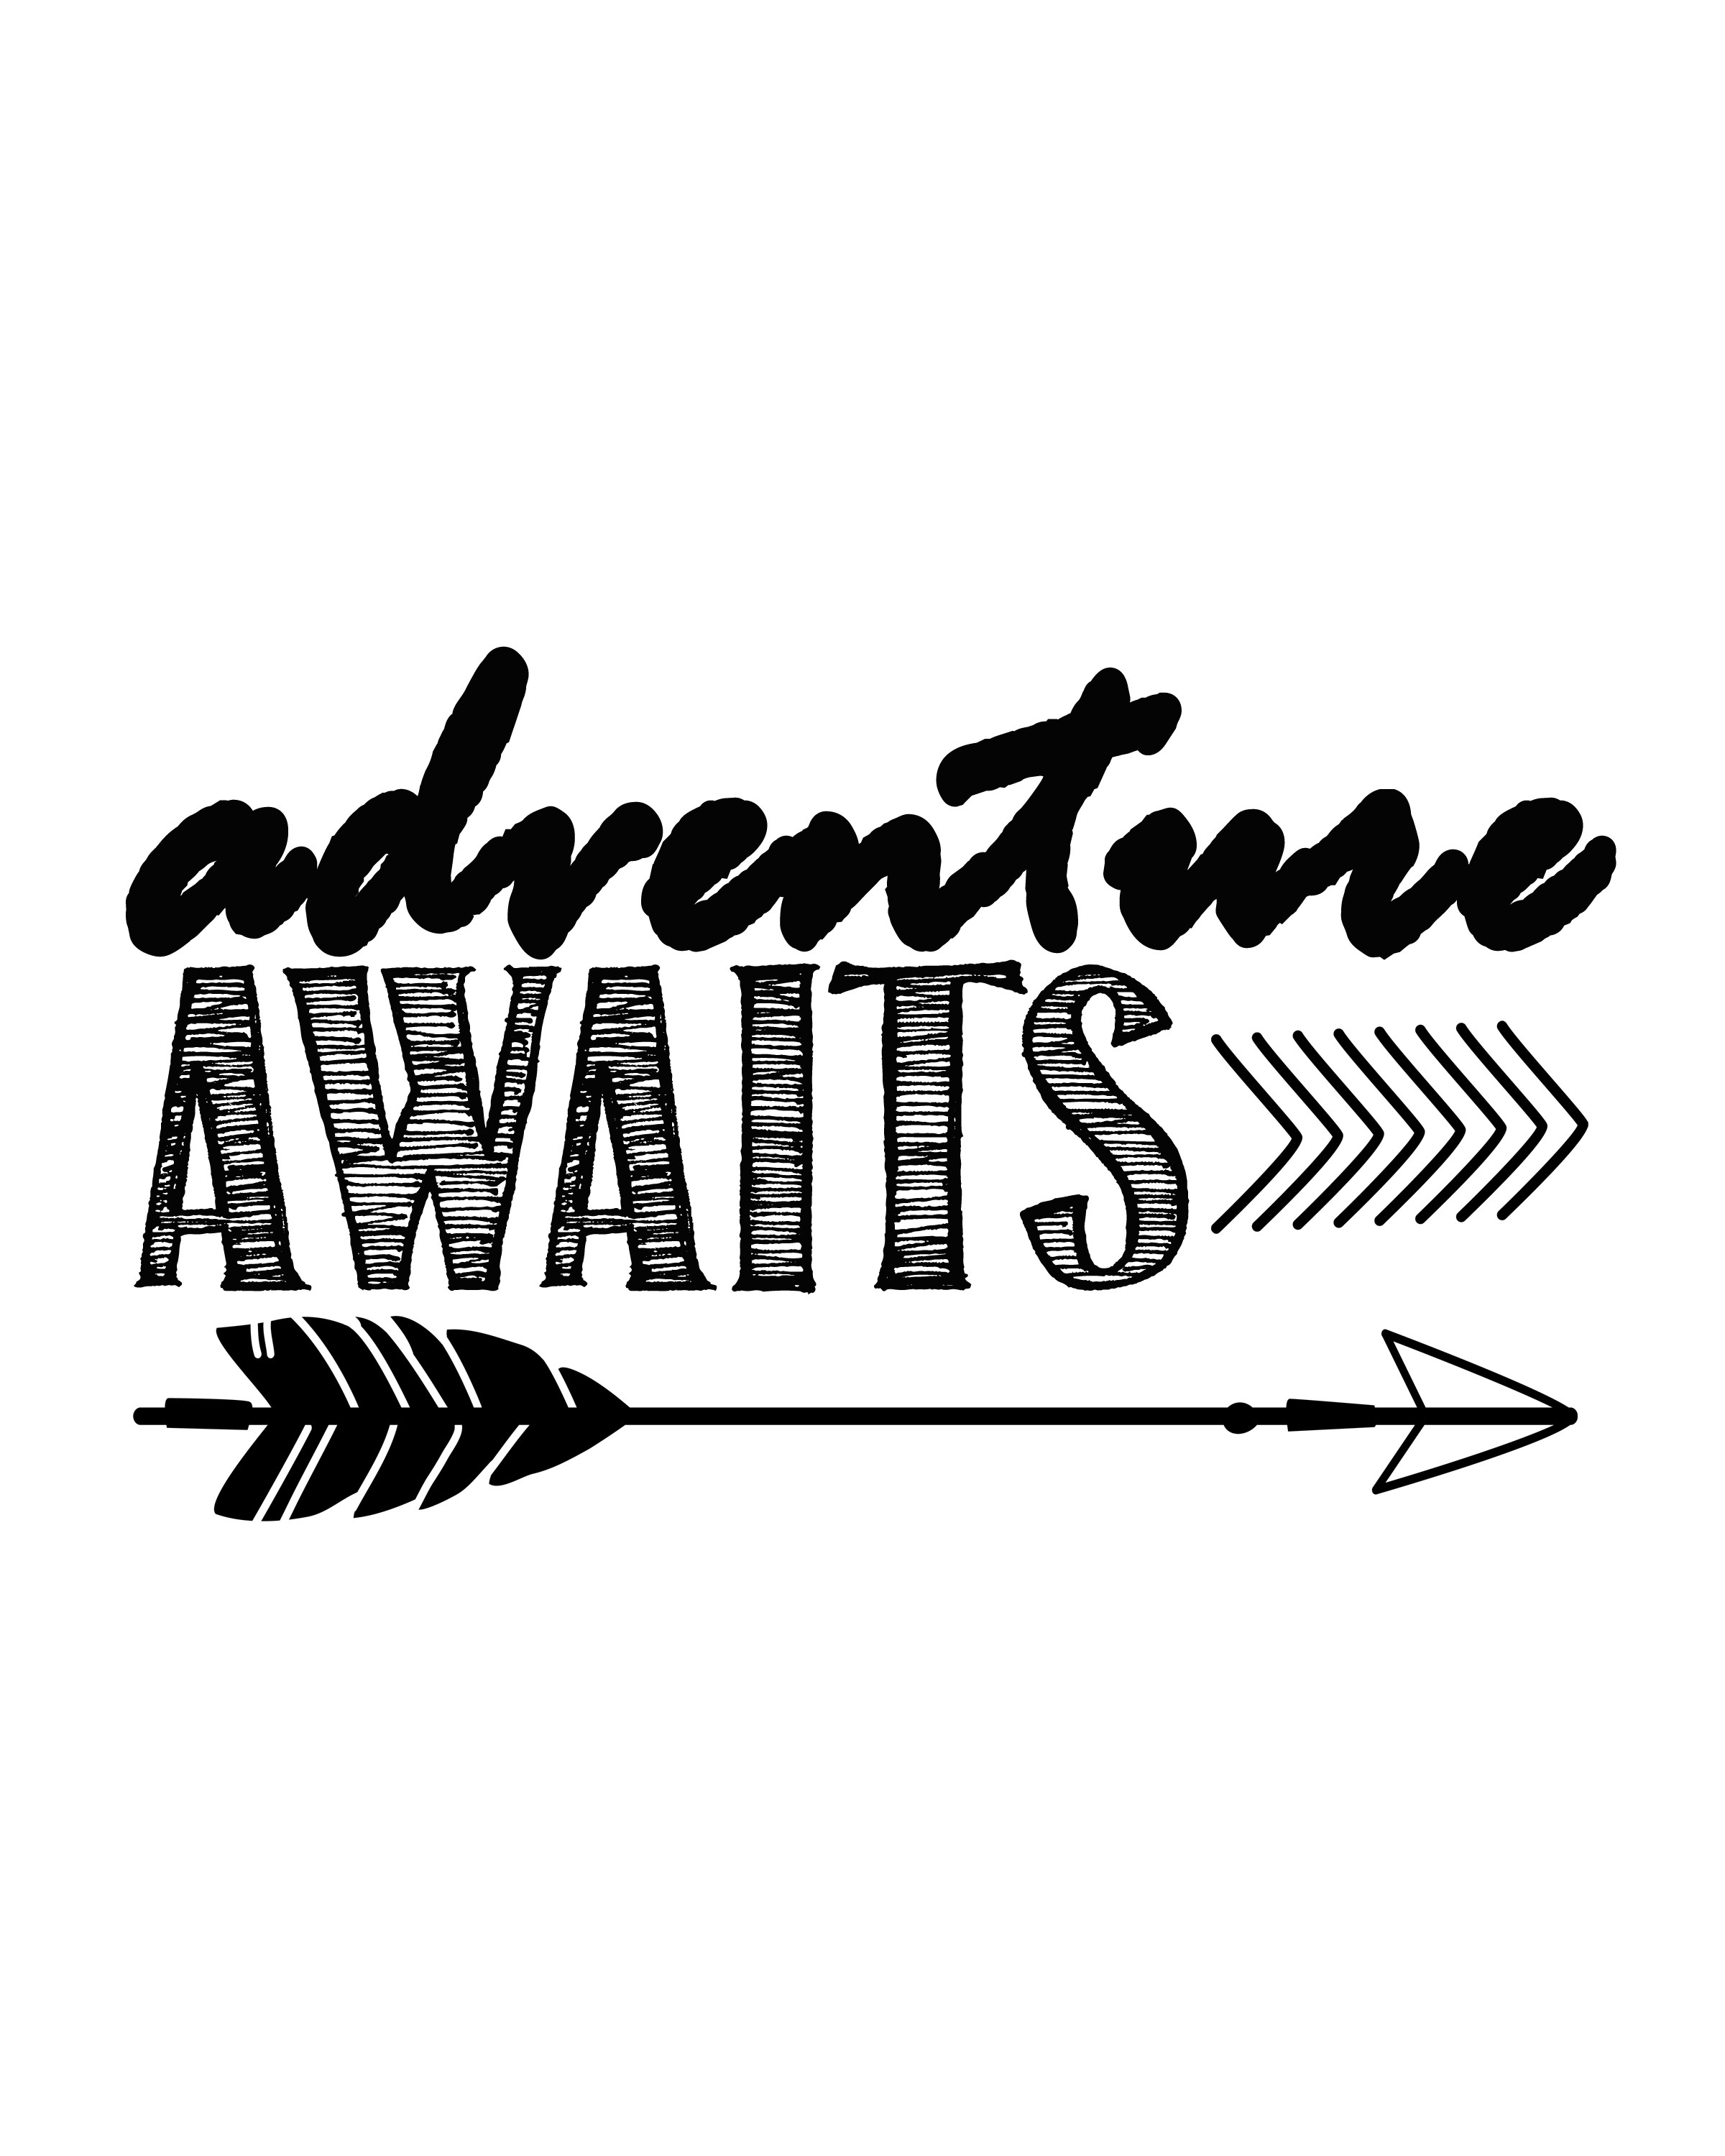 1339 Adventure free clipart.